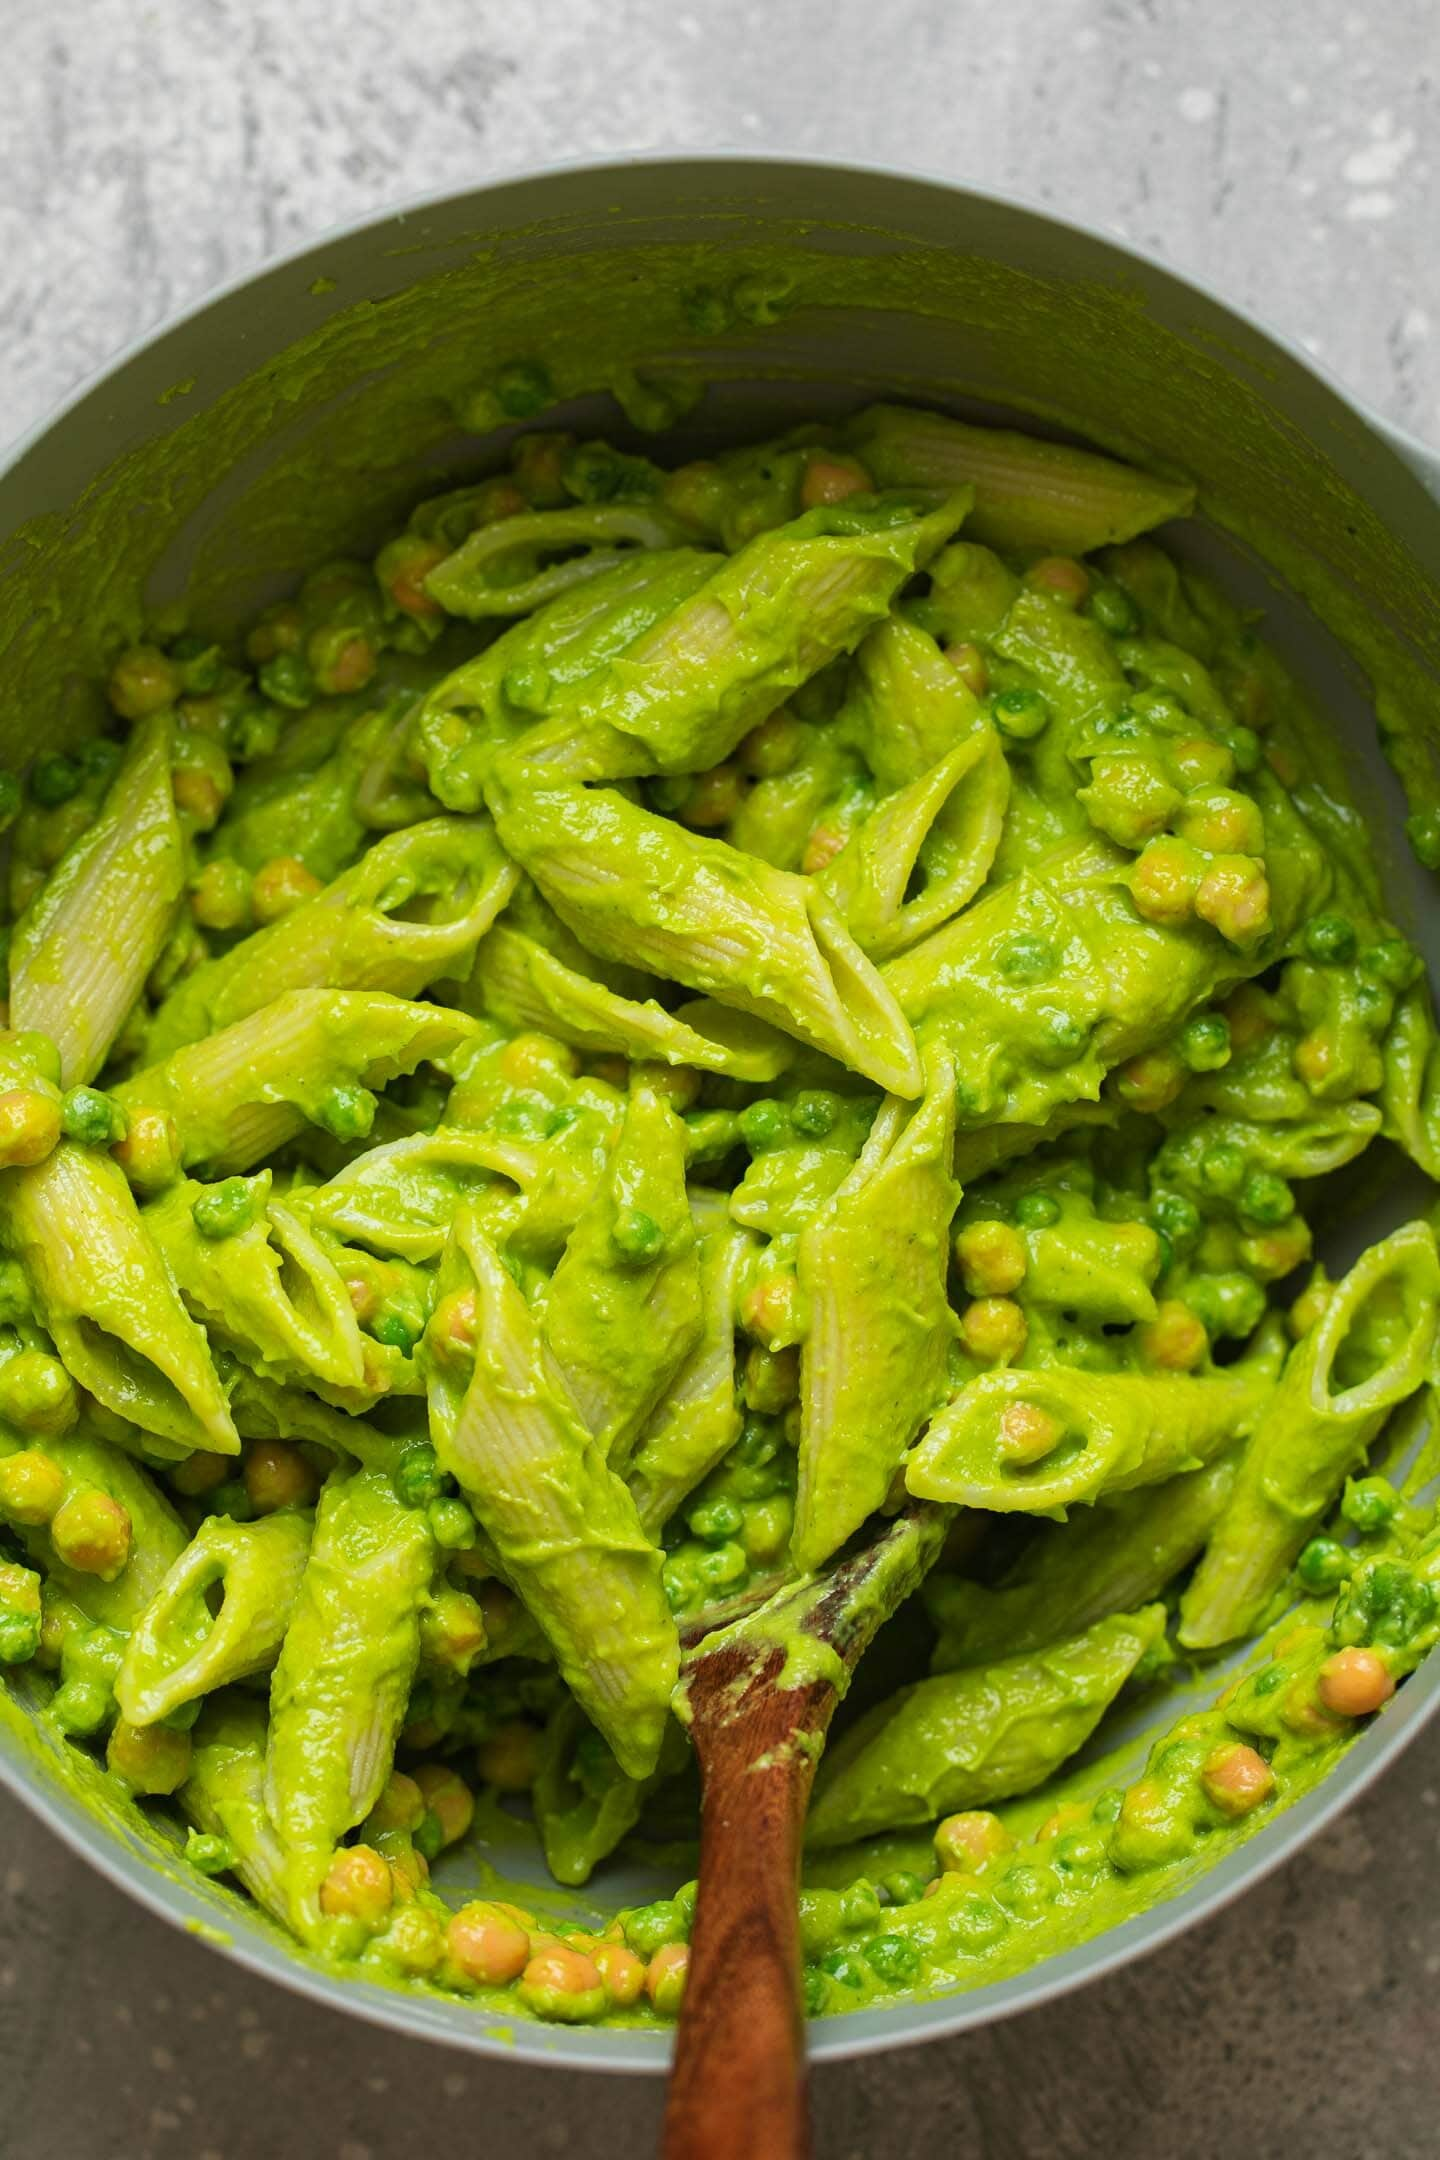 Pesto pasta in a mixing bowl with chickpeas